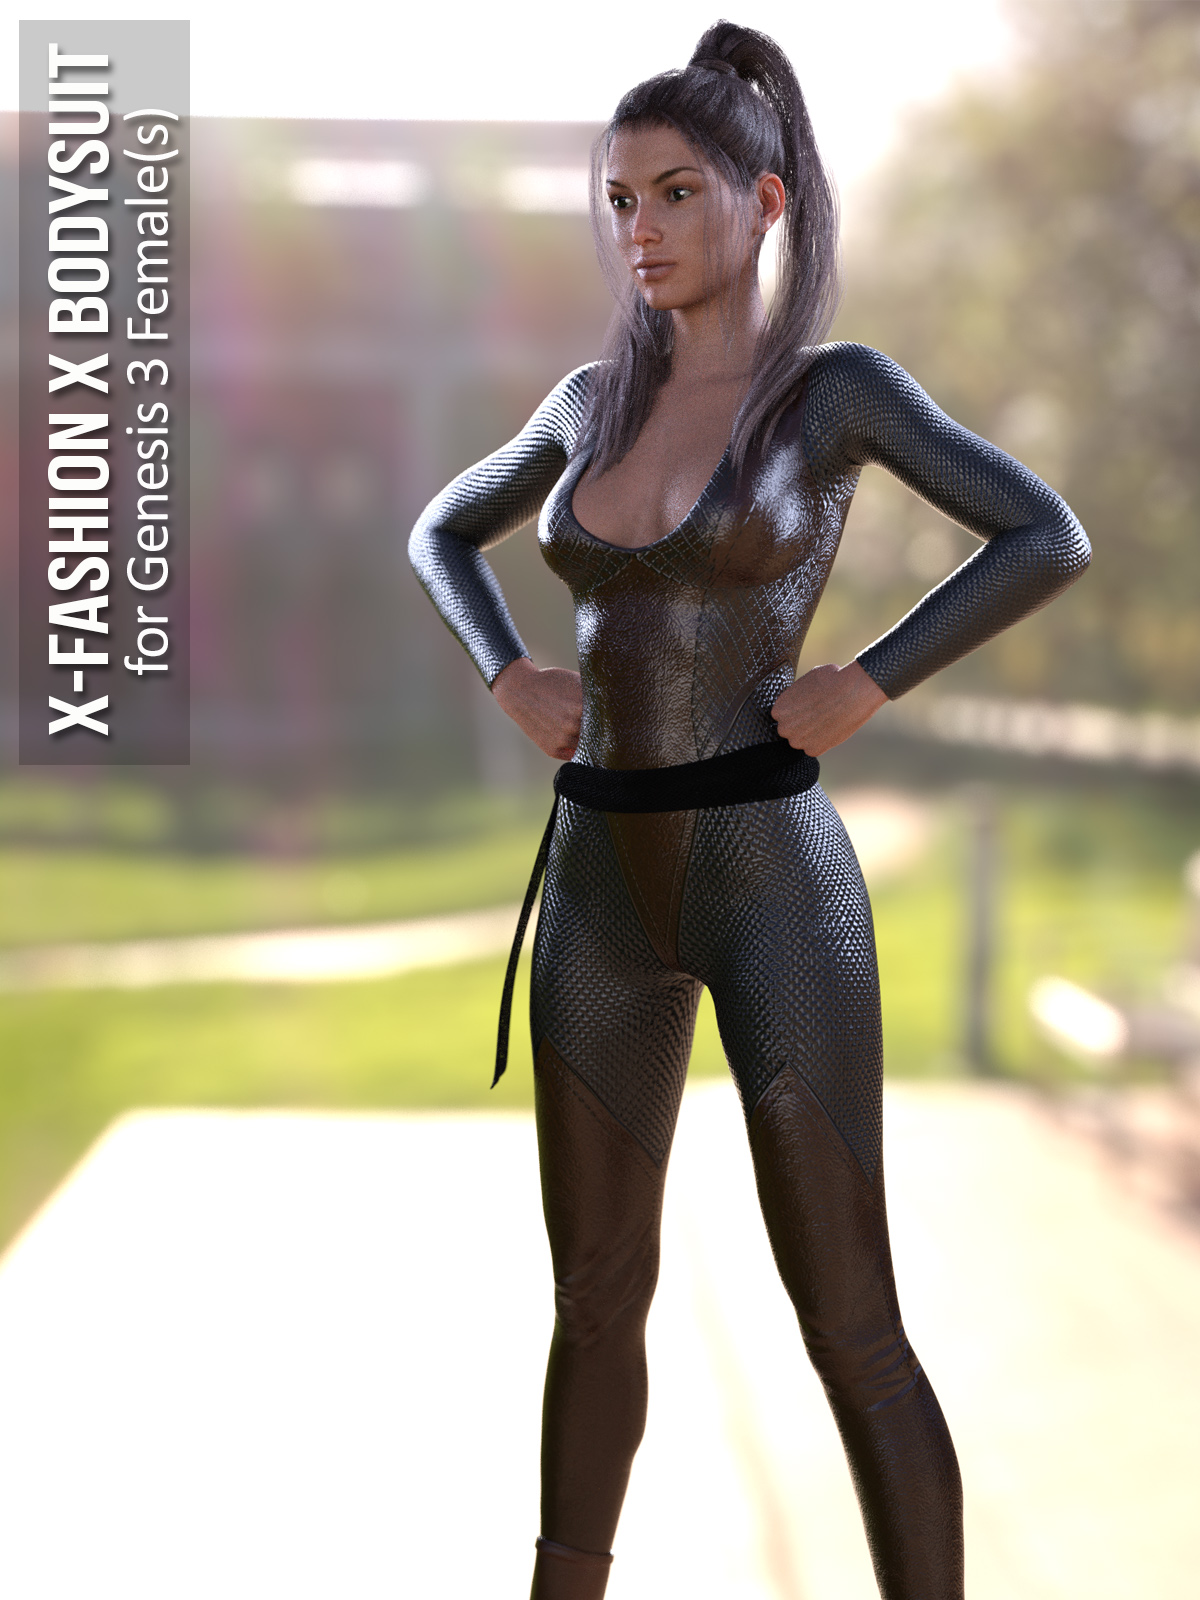 X-Fashion X Bodysuit for Genesis 3 Females 3D Figure Assets xtrart-3d b4efb1c84